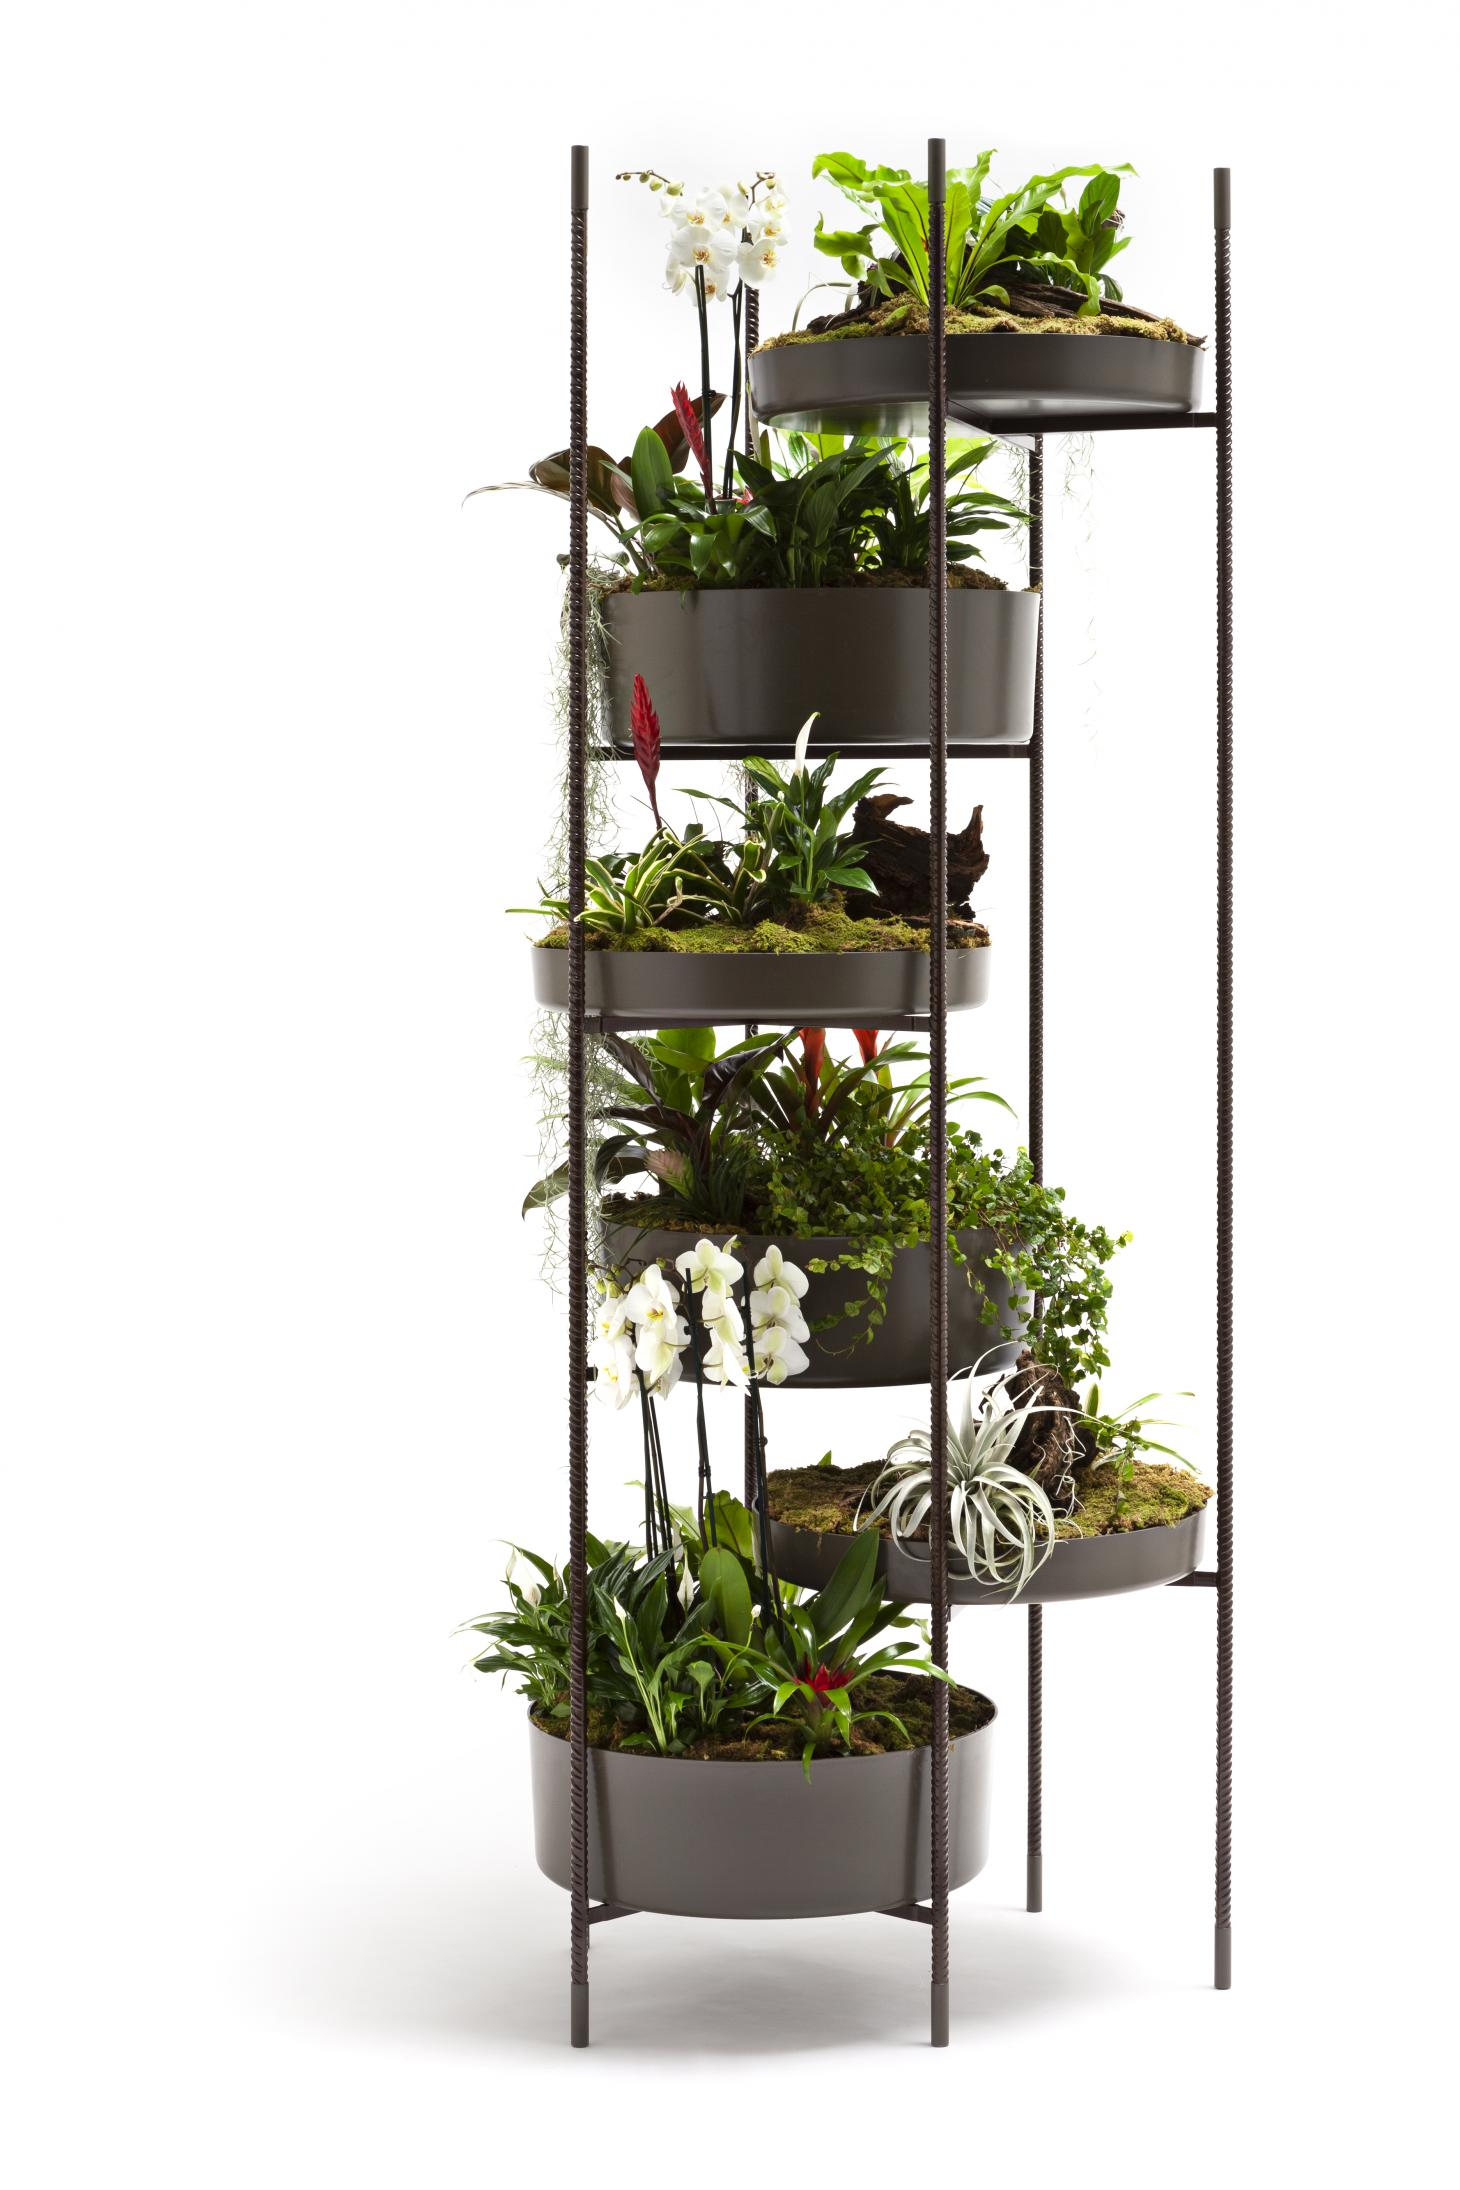 A black powder coated aluminium planter shaped like a tower with several trays for plants. Shown with green foliage throughout